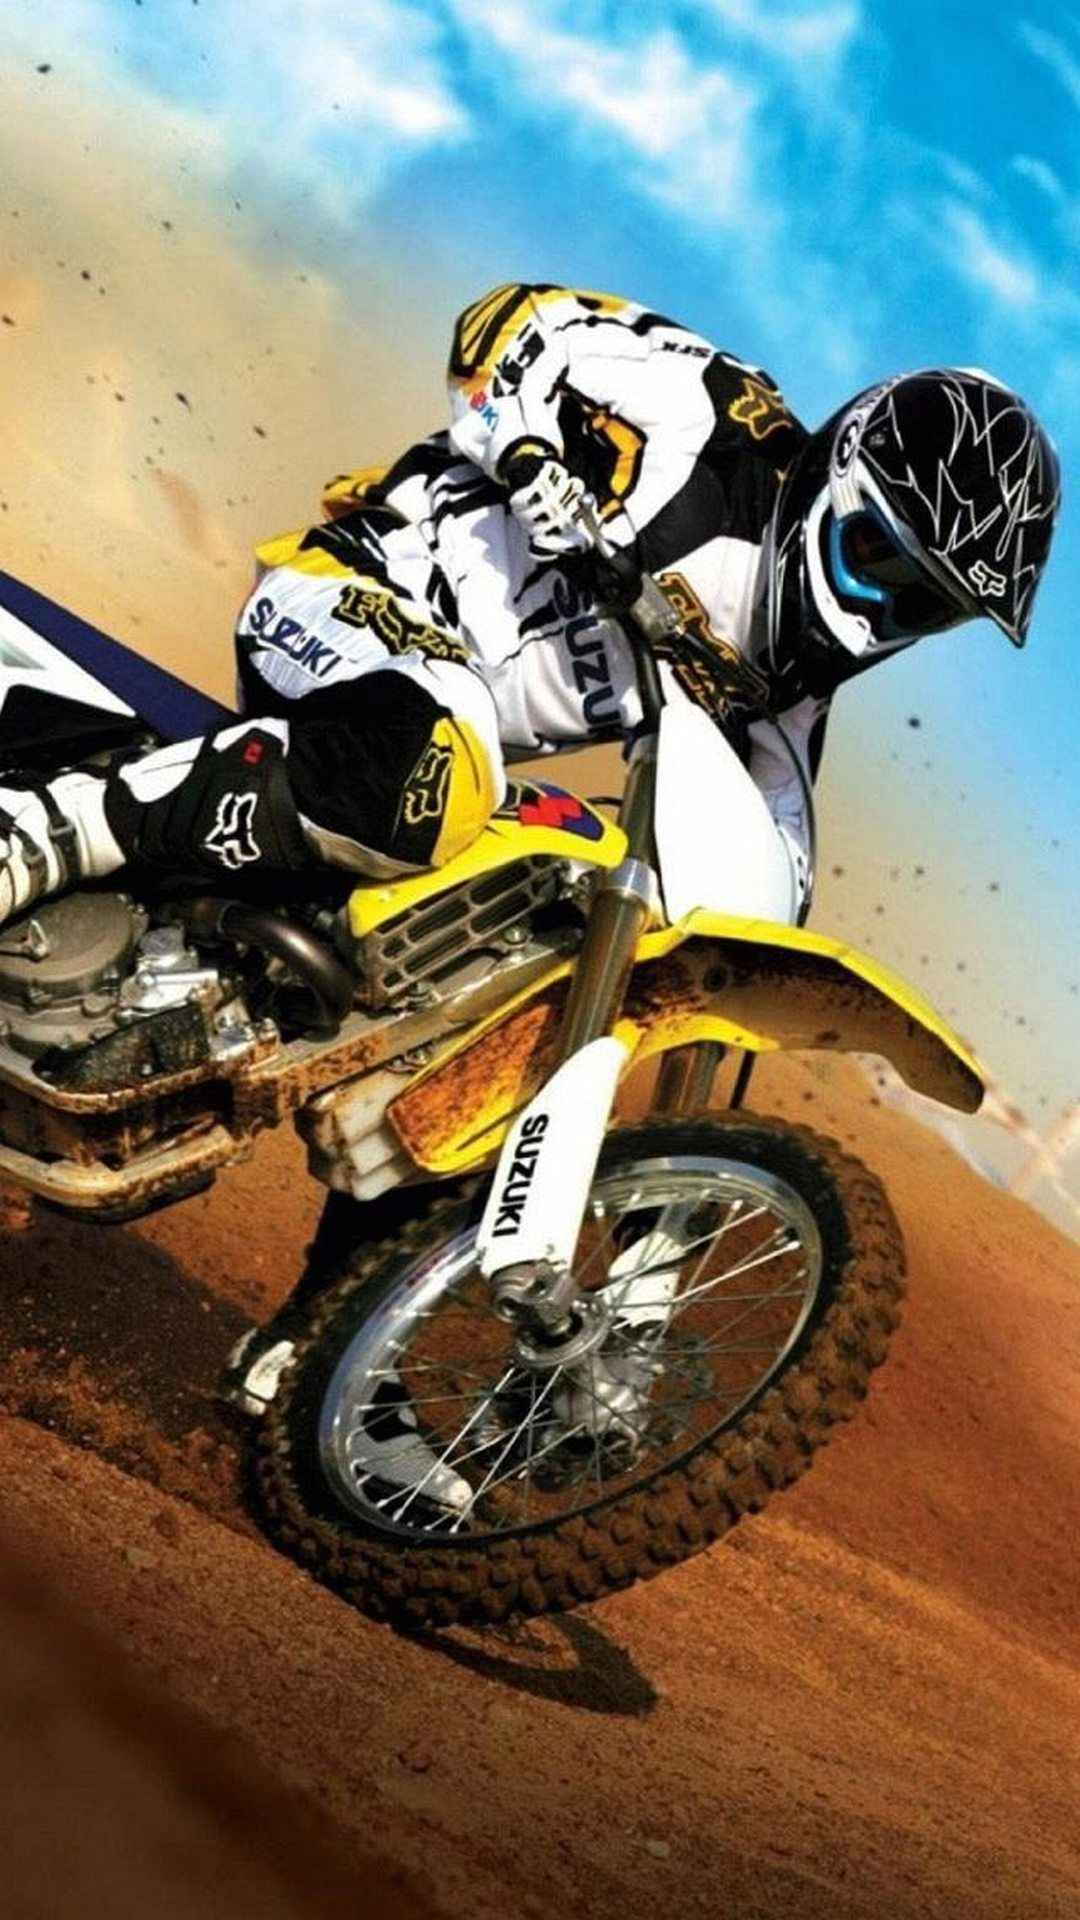 TAP AND GET THE FREE APP! Men's World Motorcyclist